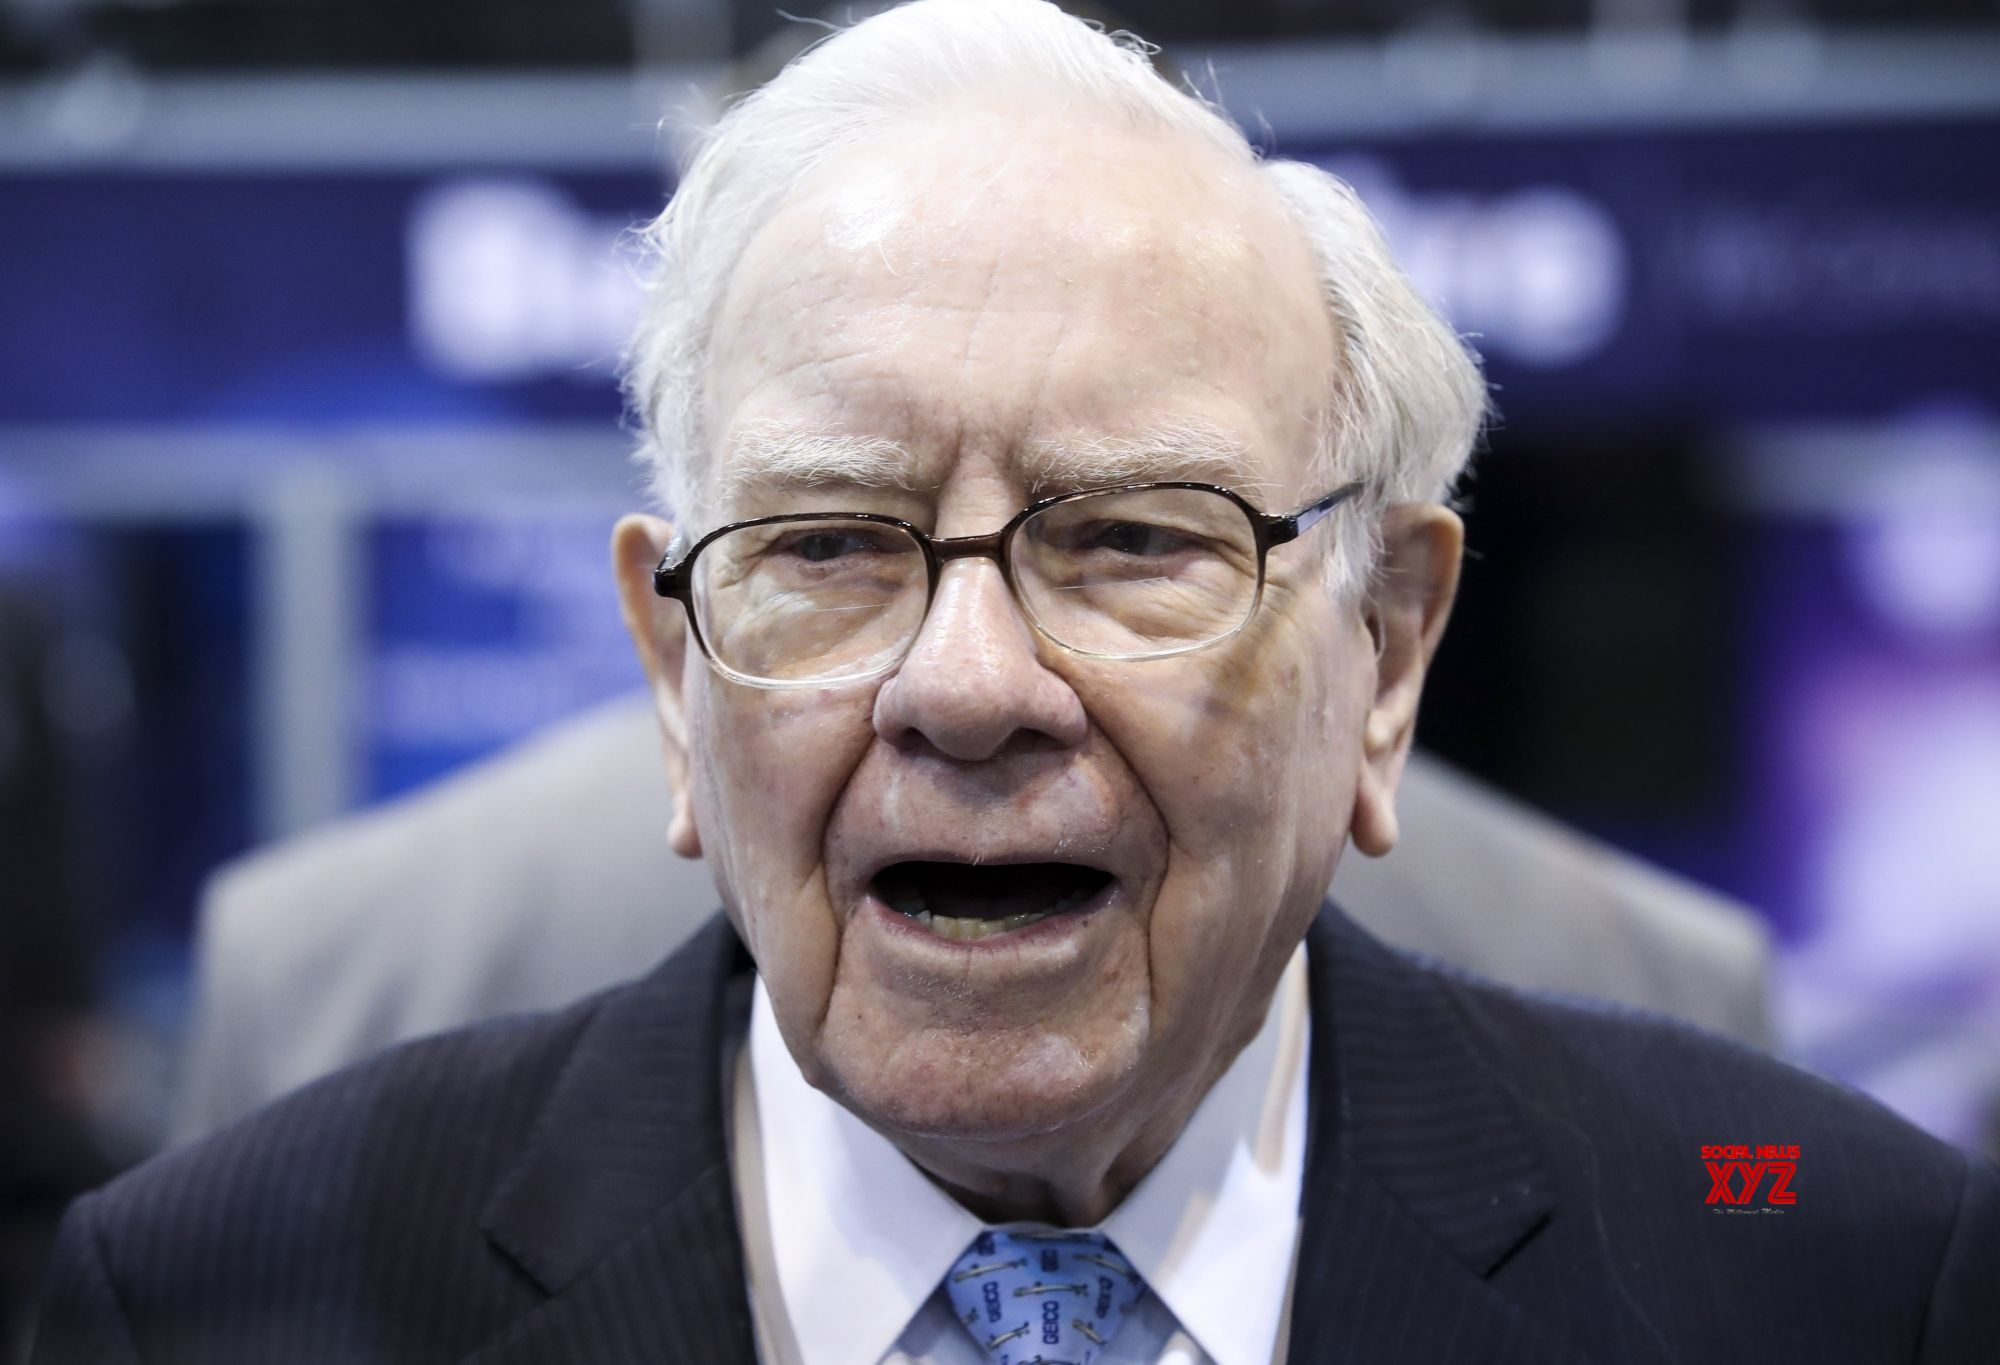 Buffett's firm reports almost $50B loss as investments drop